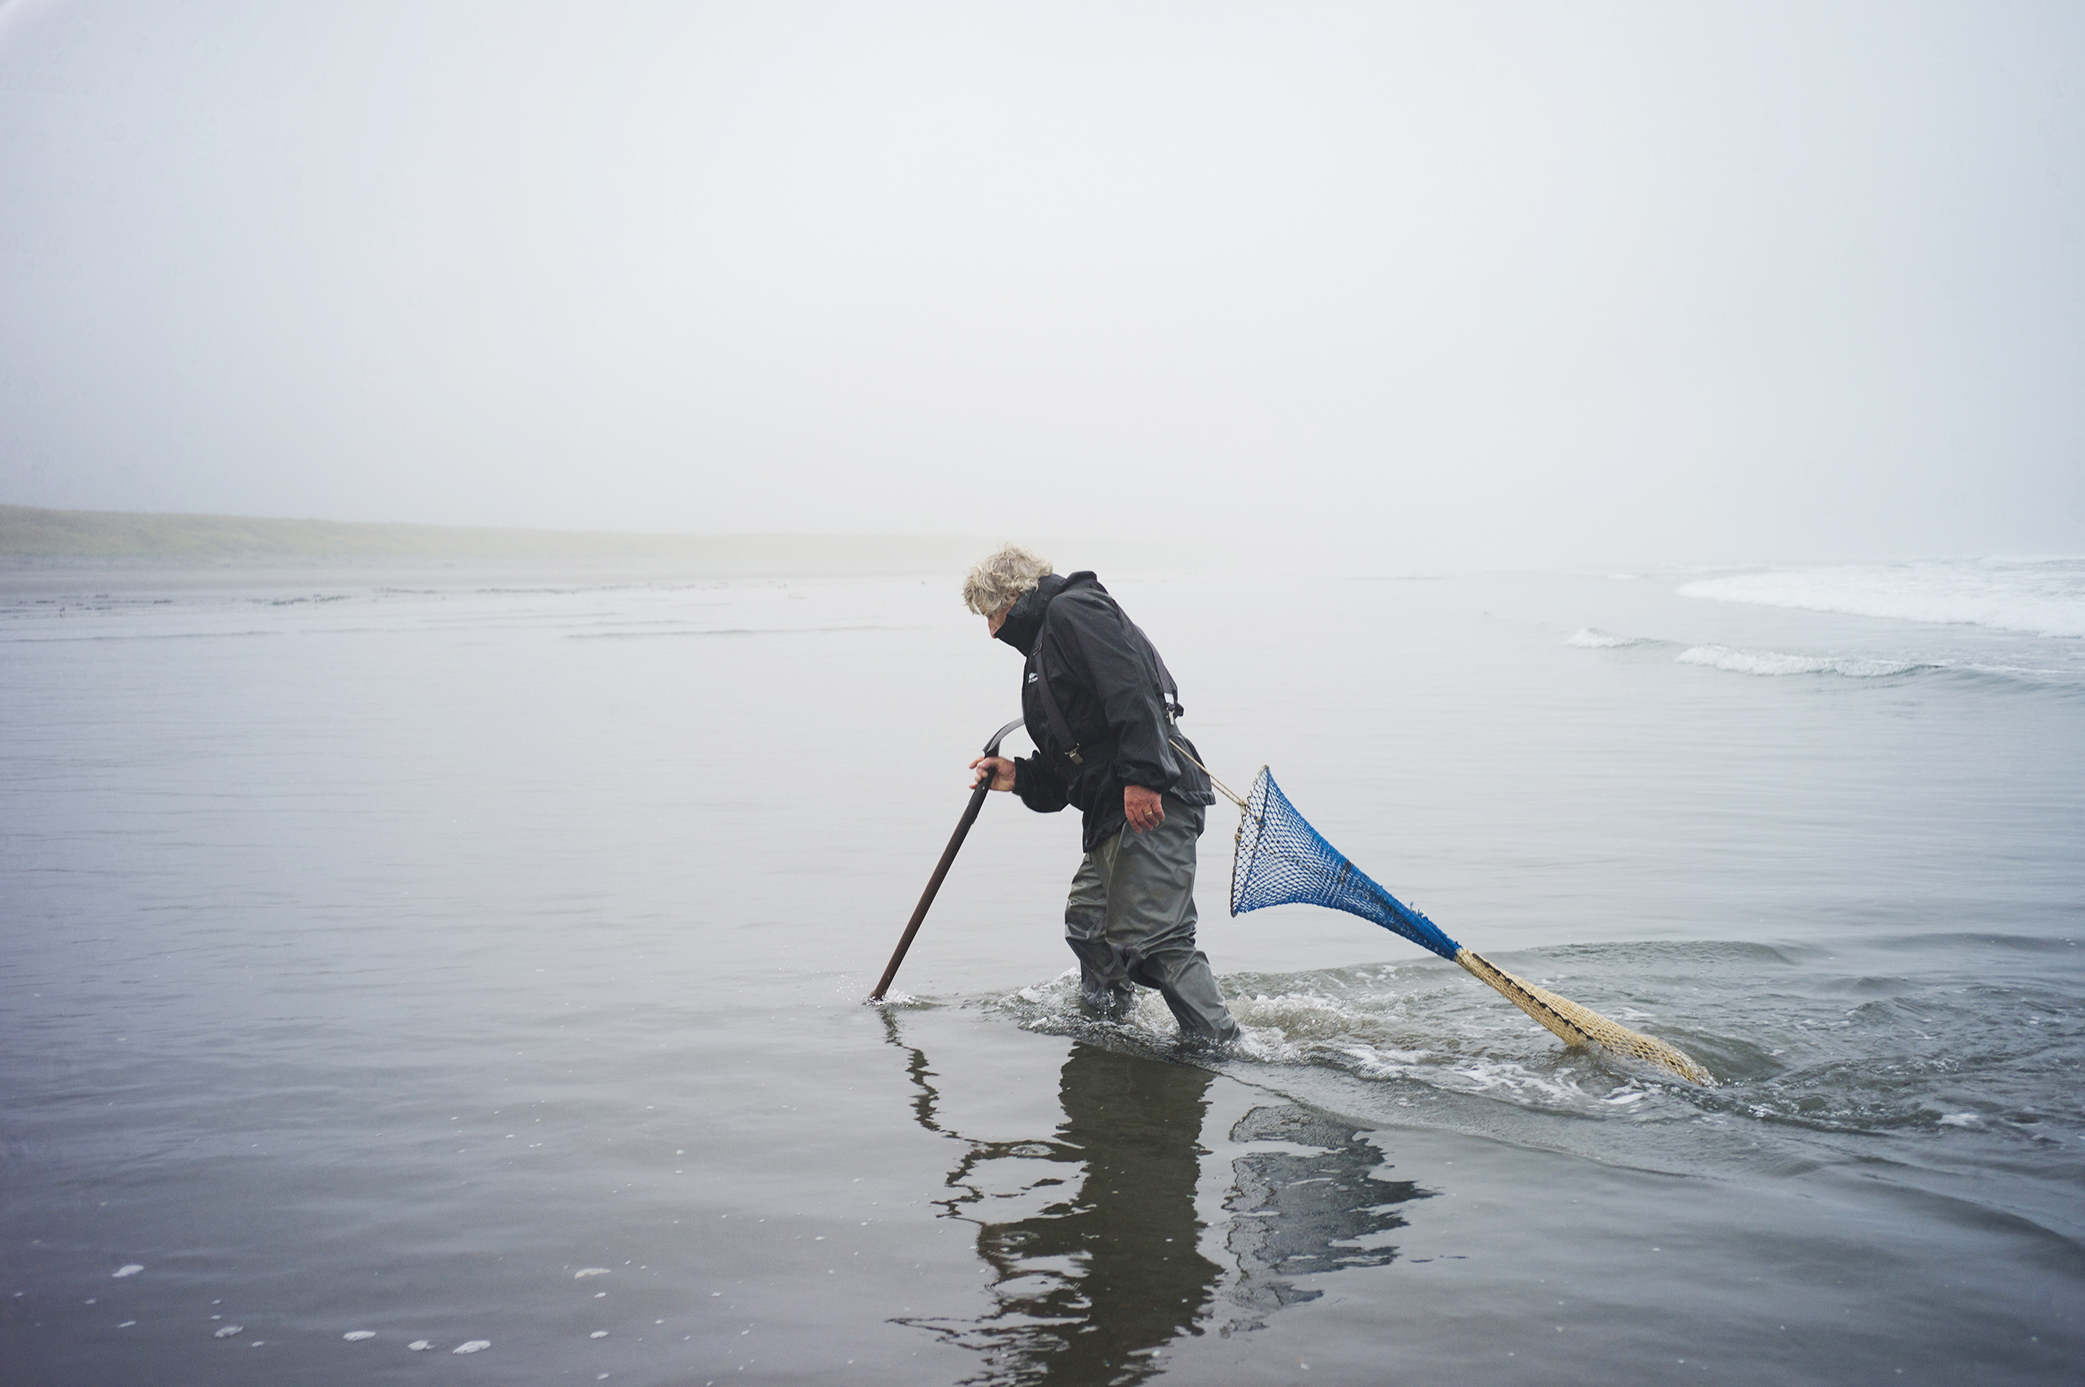 Richard Darbonne photographs Ron Neva trudging through the water hunting for razor clams for 1859 magazine